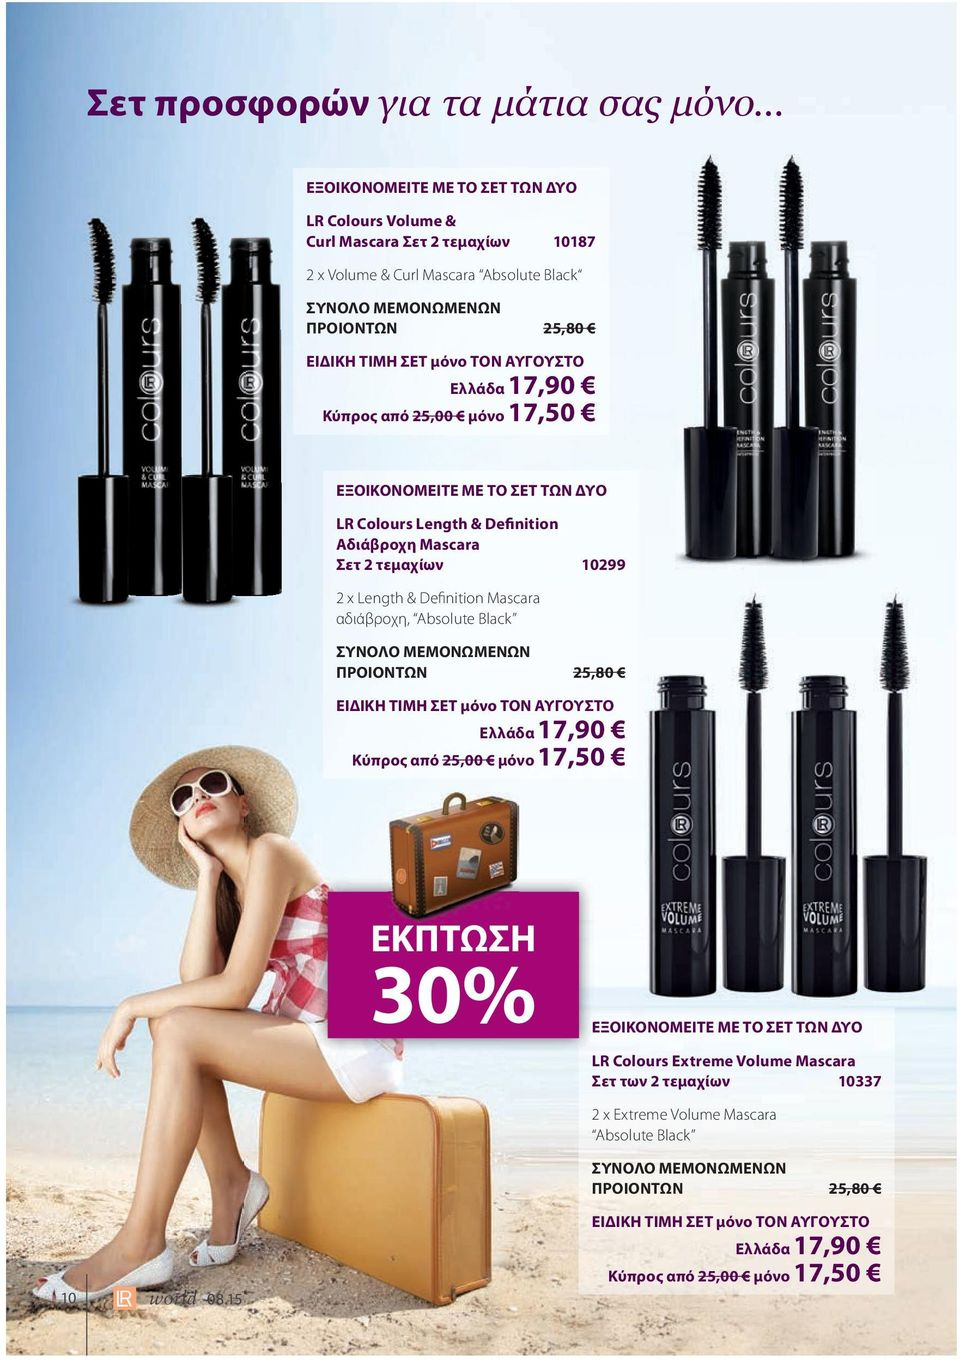 Length & Definition Mascara αδιάβροχη, Absolute Black ΠΡΟΙΟΝΤΩΝ 25,80 Ελλάδα 17,90 Κύπρος από 25,00 μόνο 17,50 ΤΩΝ ΔΥΟ LR Colours Extreme